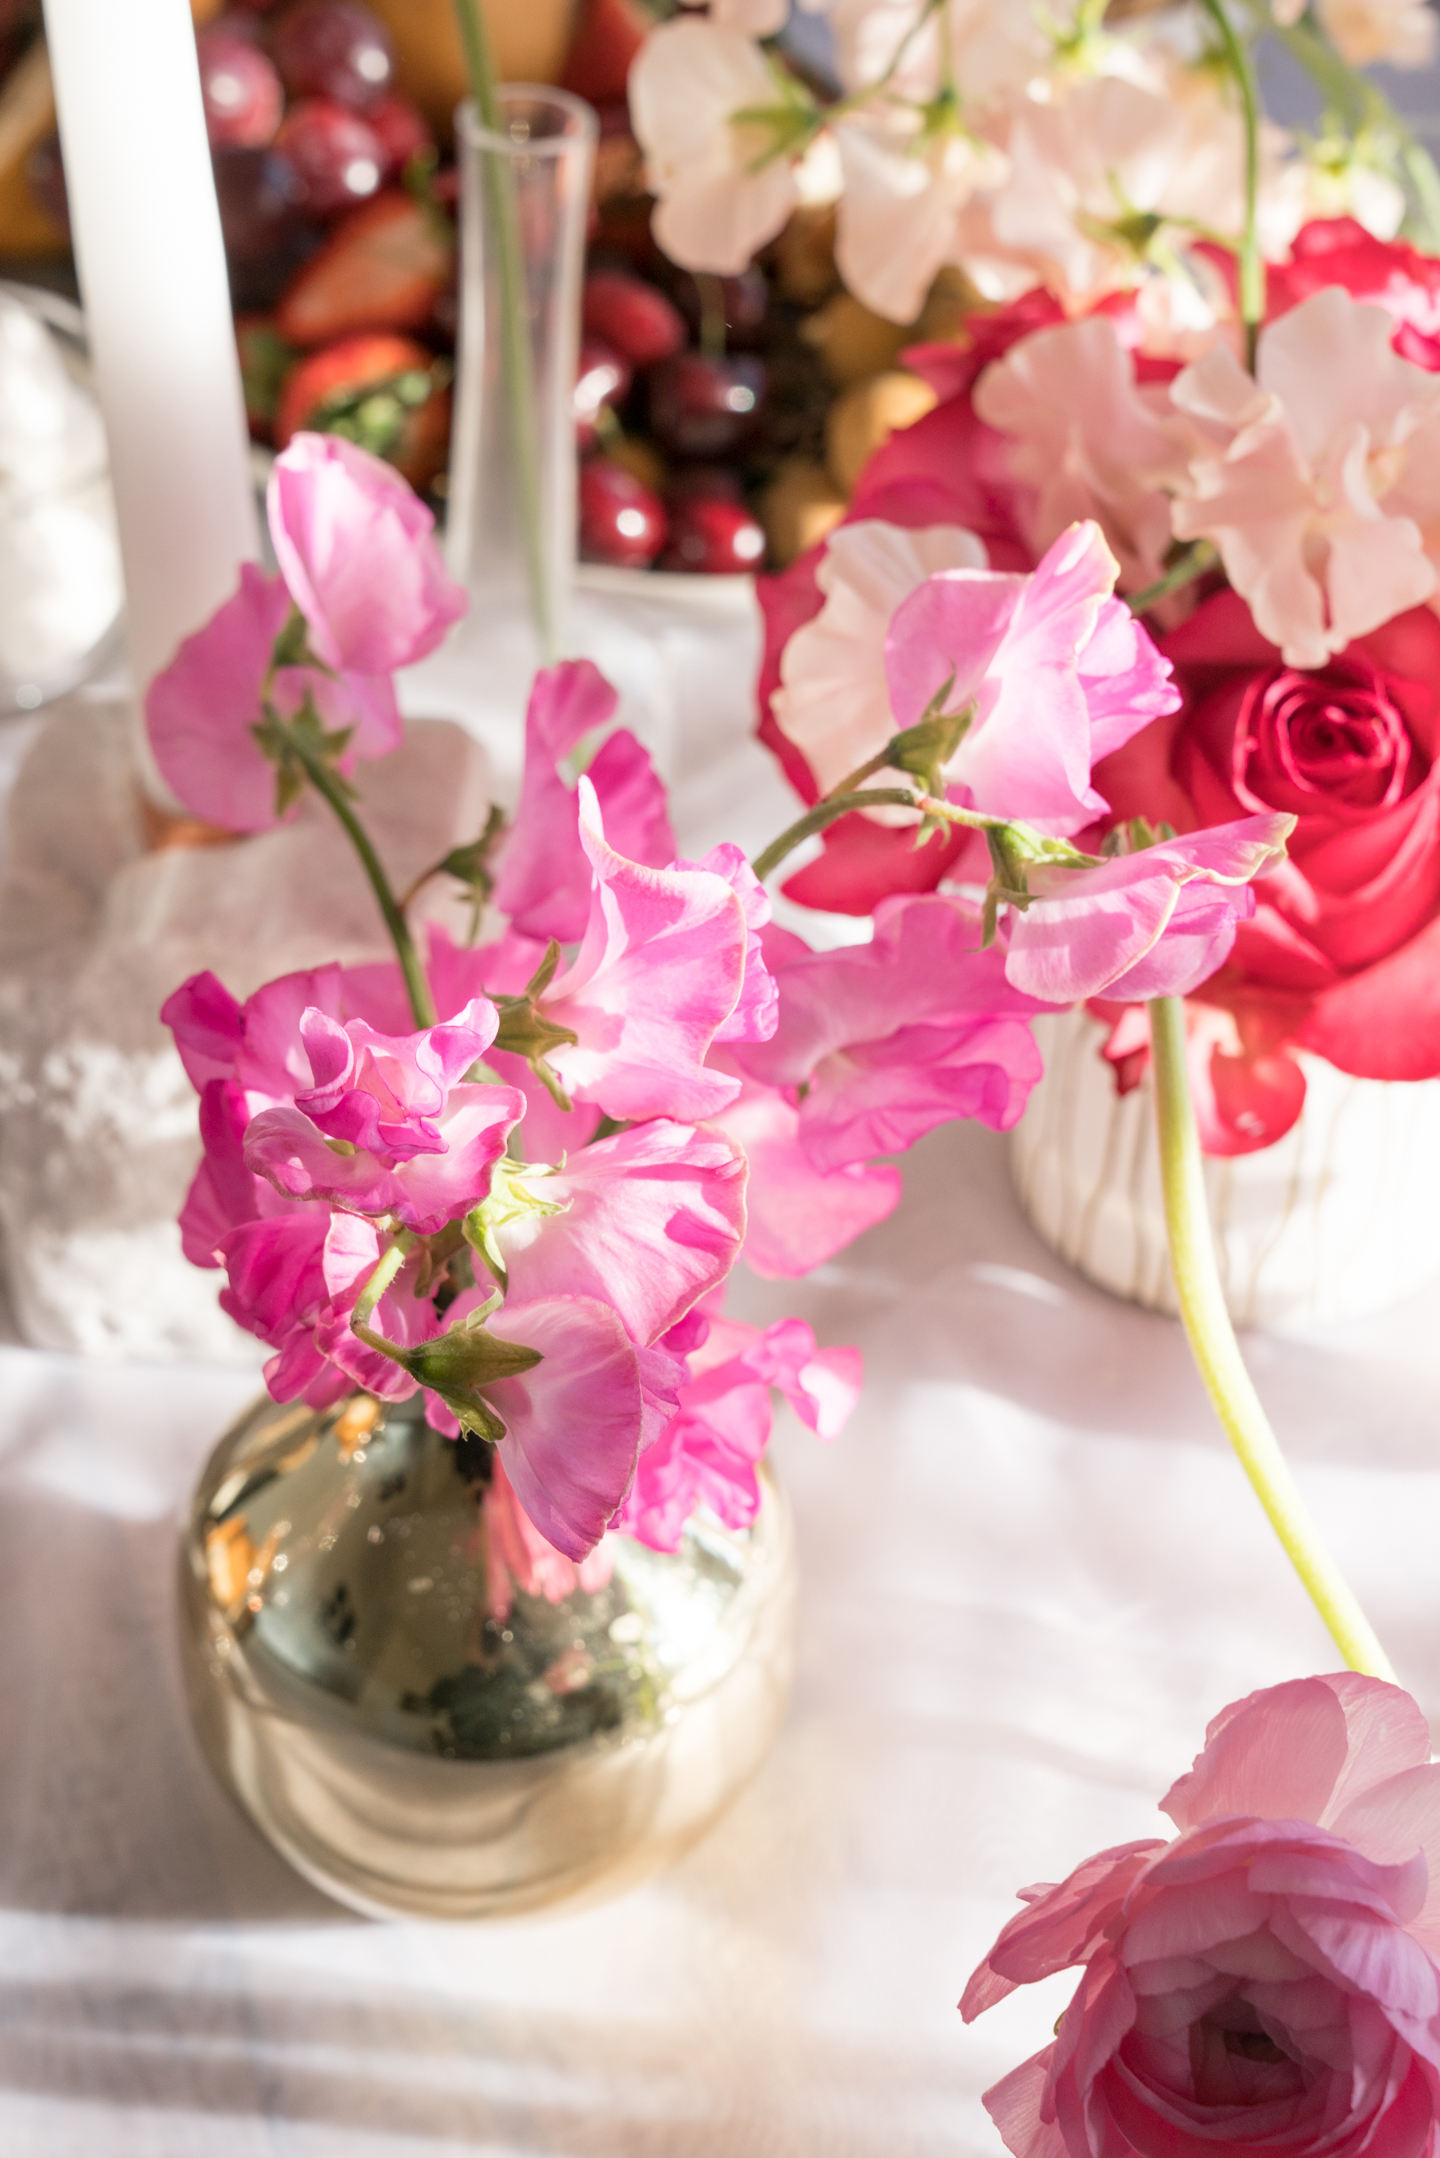 Pinks and Reds Food and Flowers Tablescape: Valentines Day